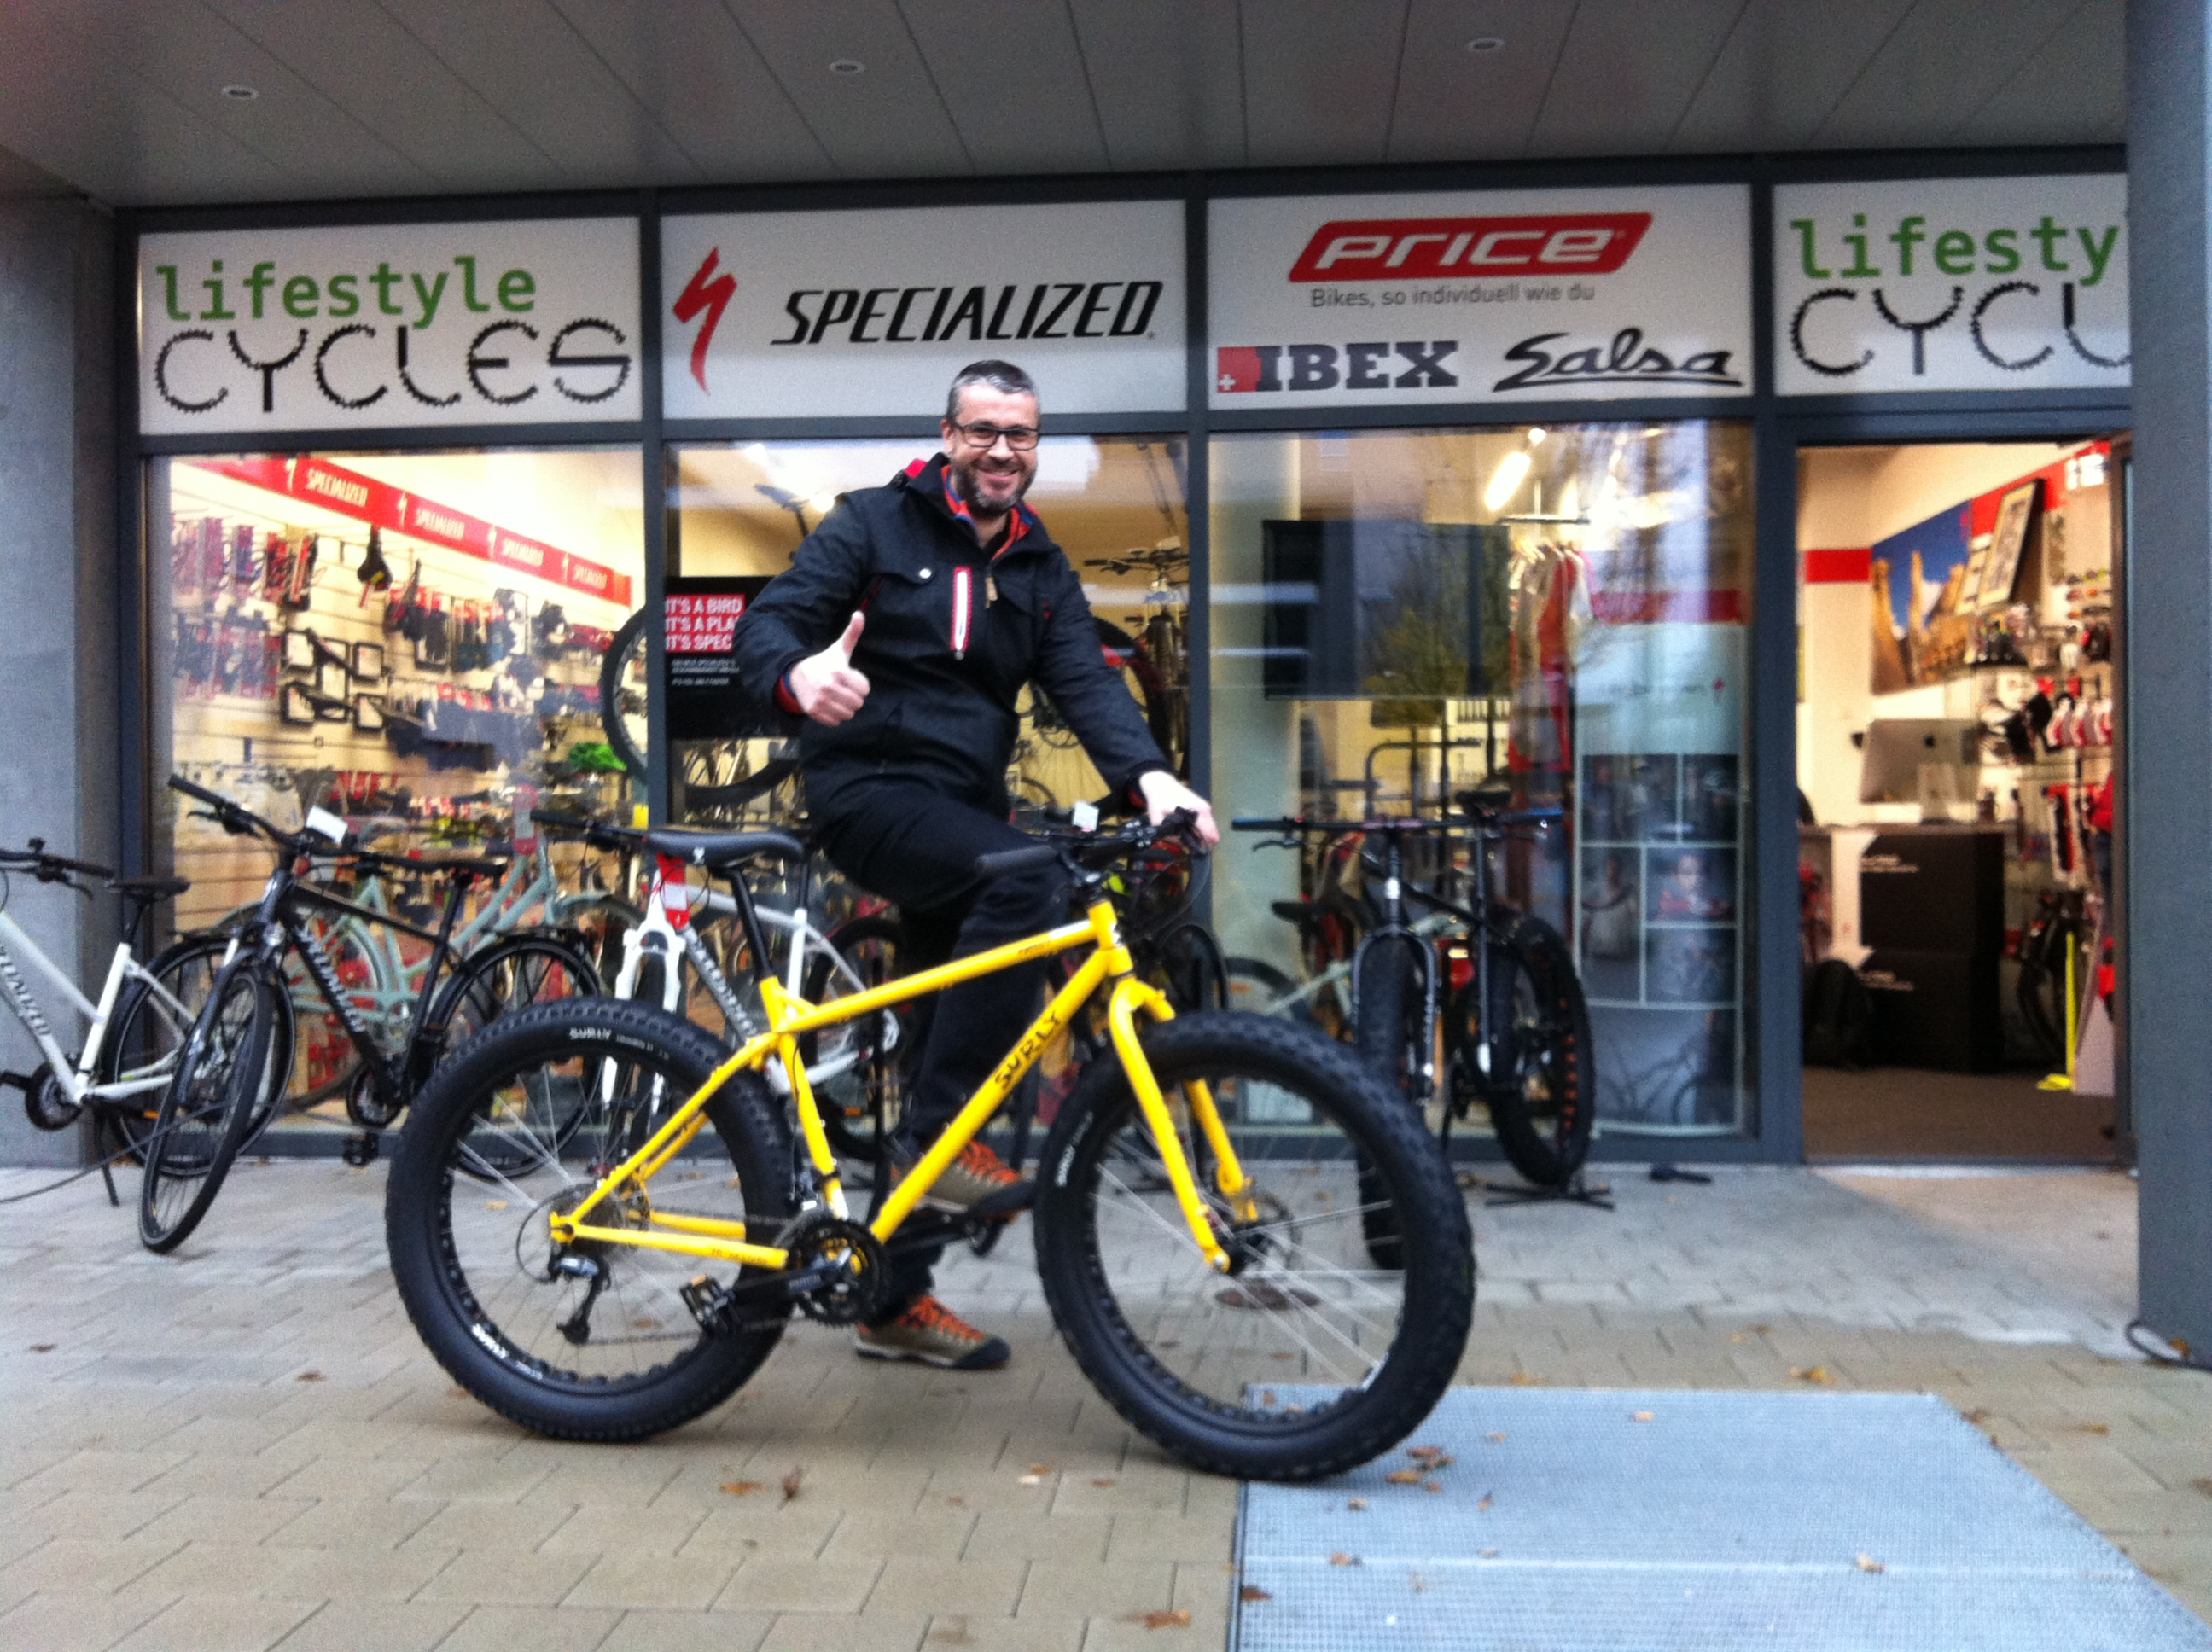 Surly Bikes Lifestyle Cycles Special Bikes For Special